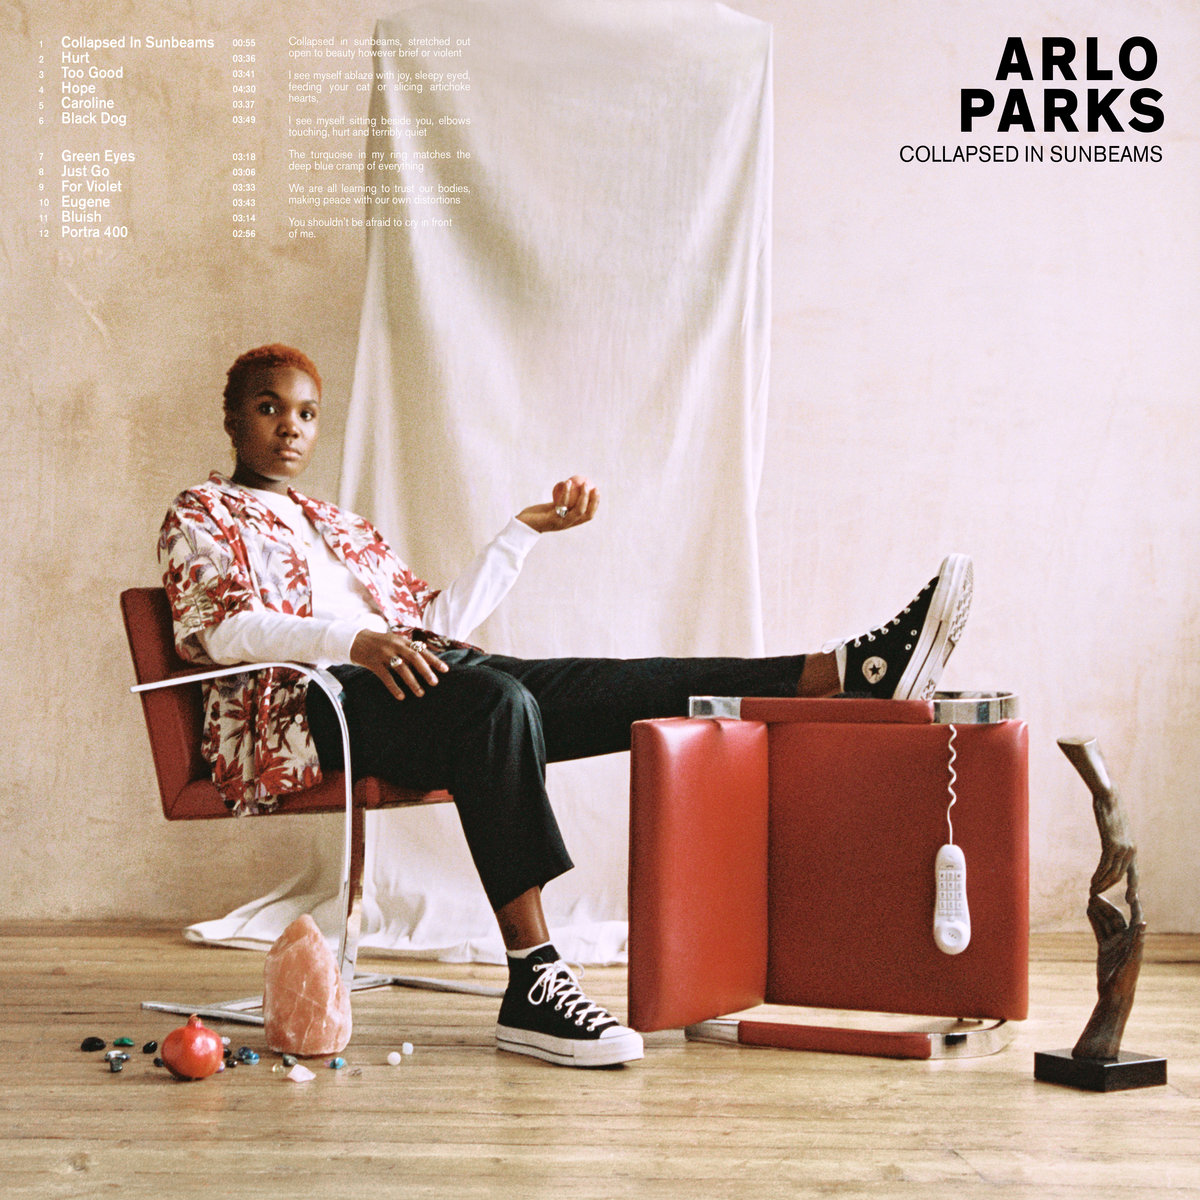 Collapsed in Sunbeams | Arlo Parks